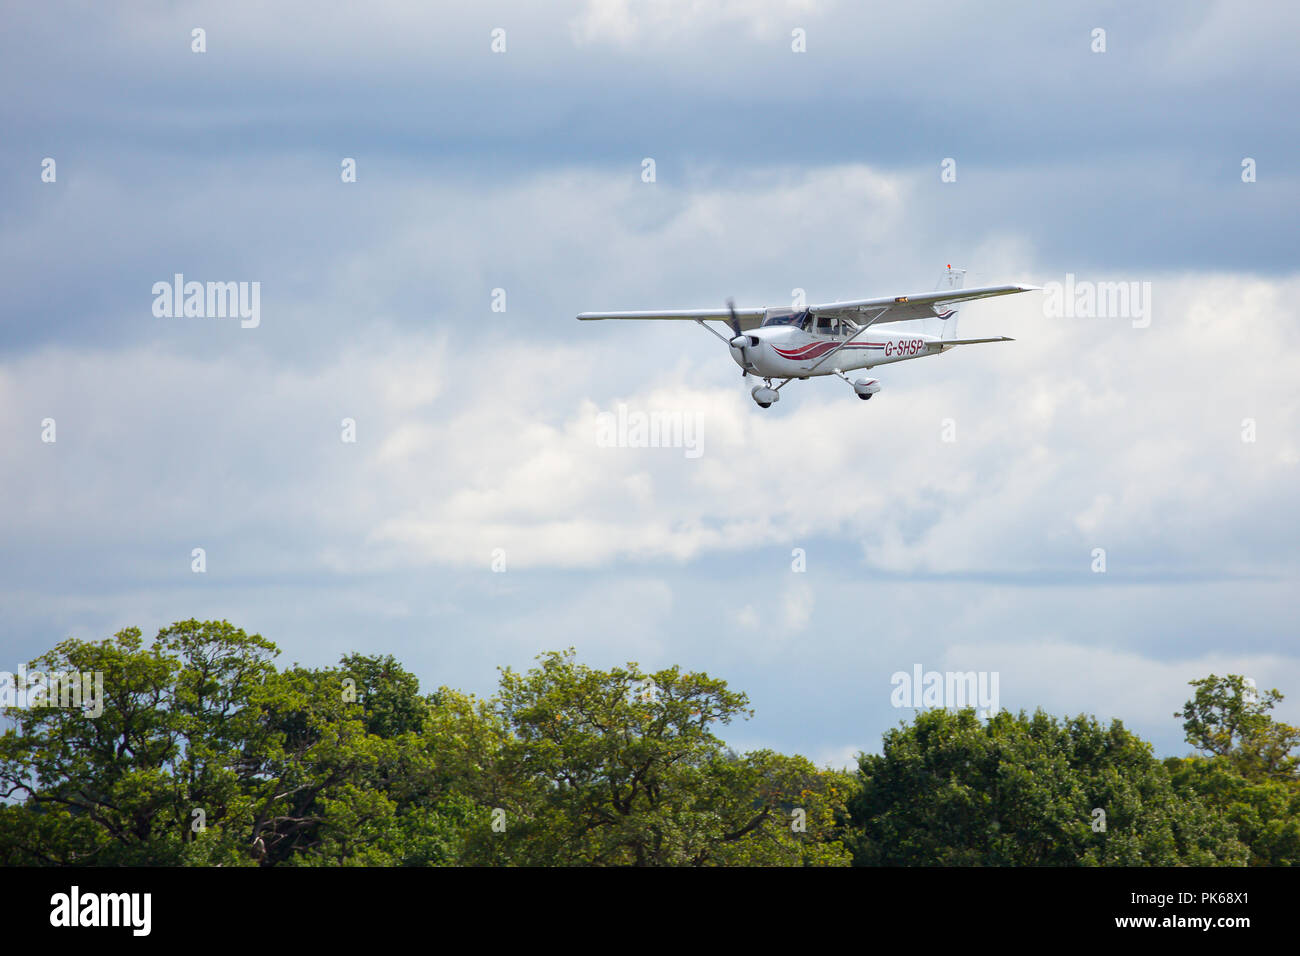 Landscape shot of a light aircraft, in the sky, coming in to land, UK. - Stock Image